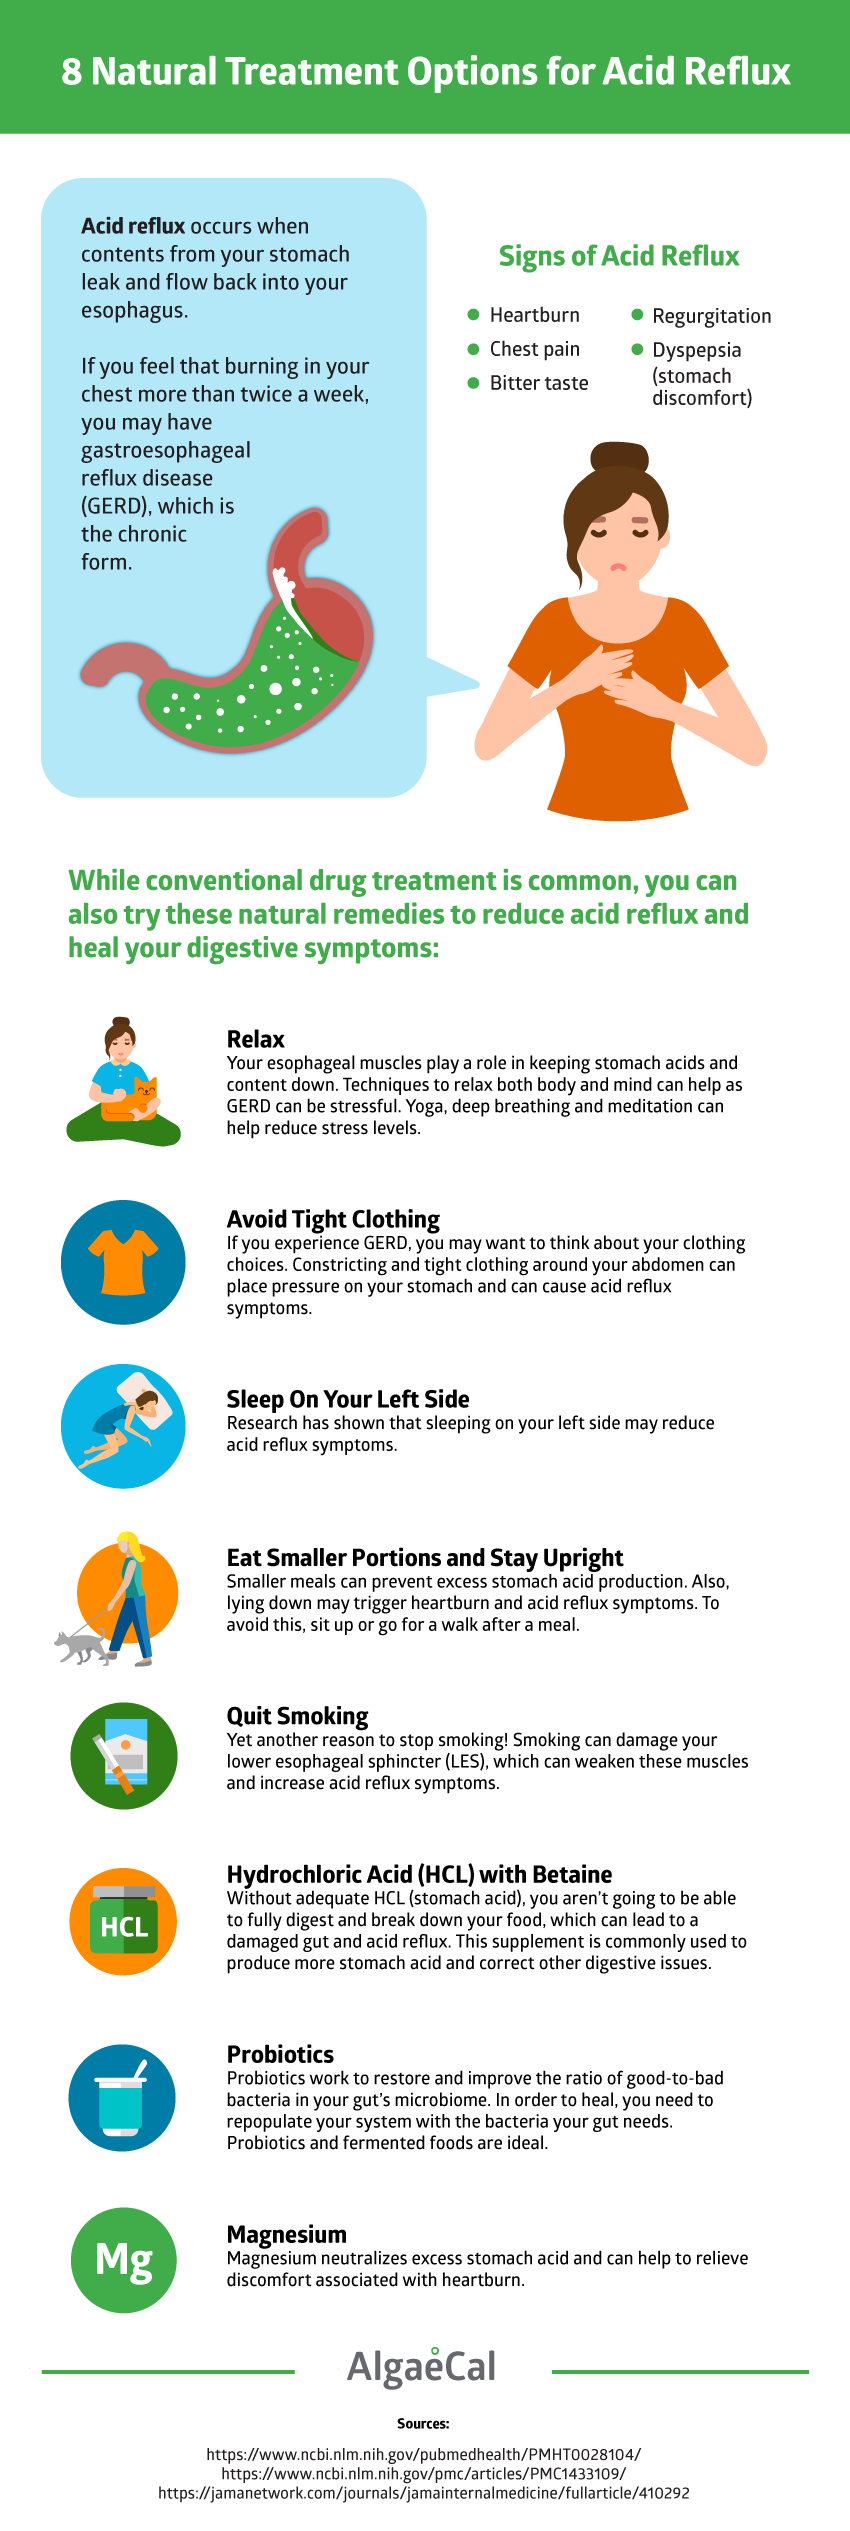 8 Natural Acid Reflux Treatment Options Infographic